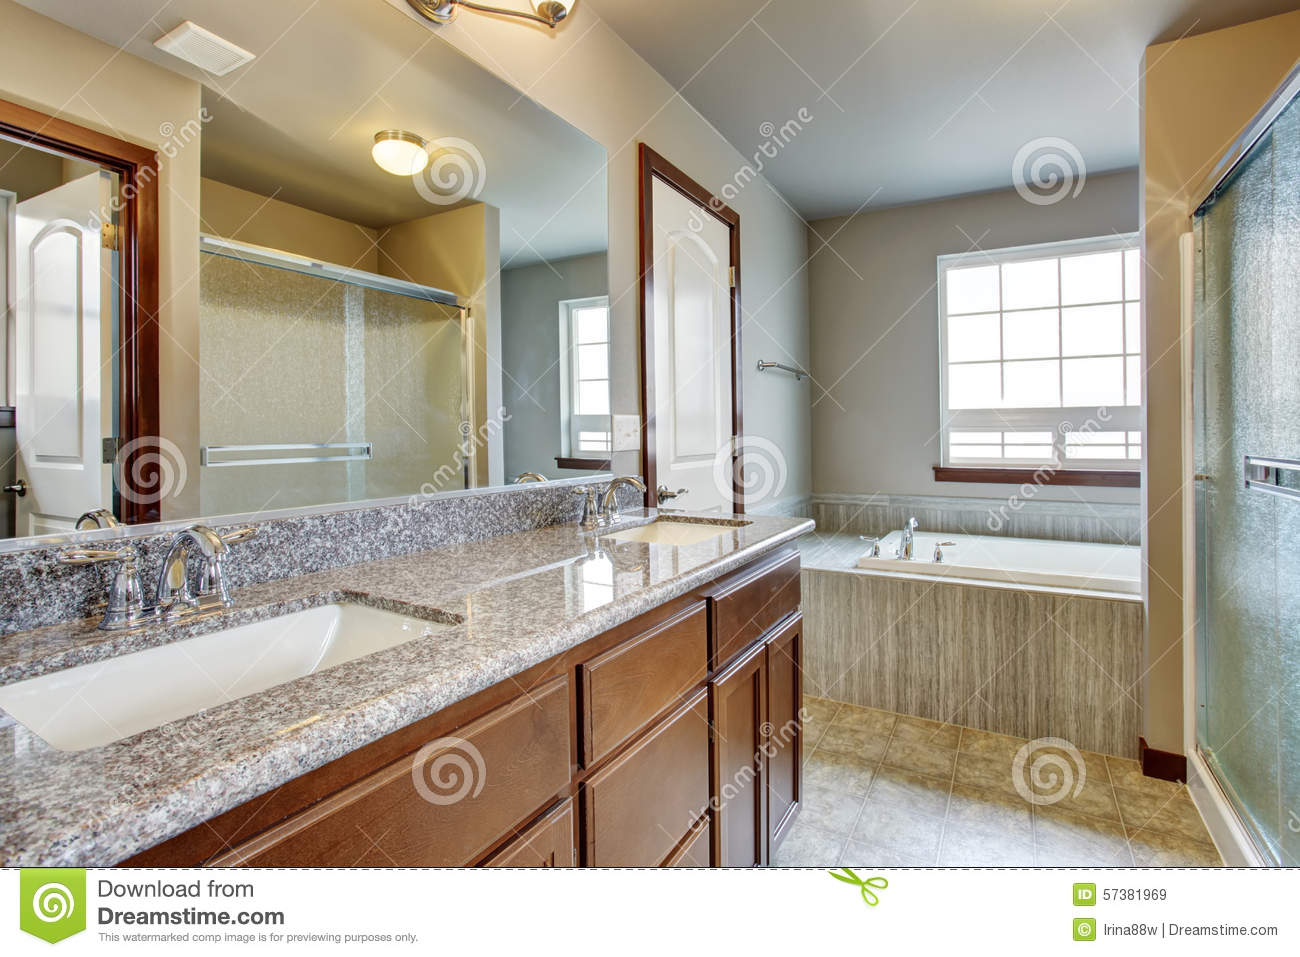 Toilet room in the modern royalty free stock image for Bathroom design 9x9